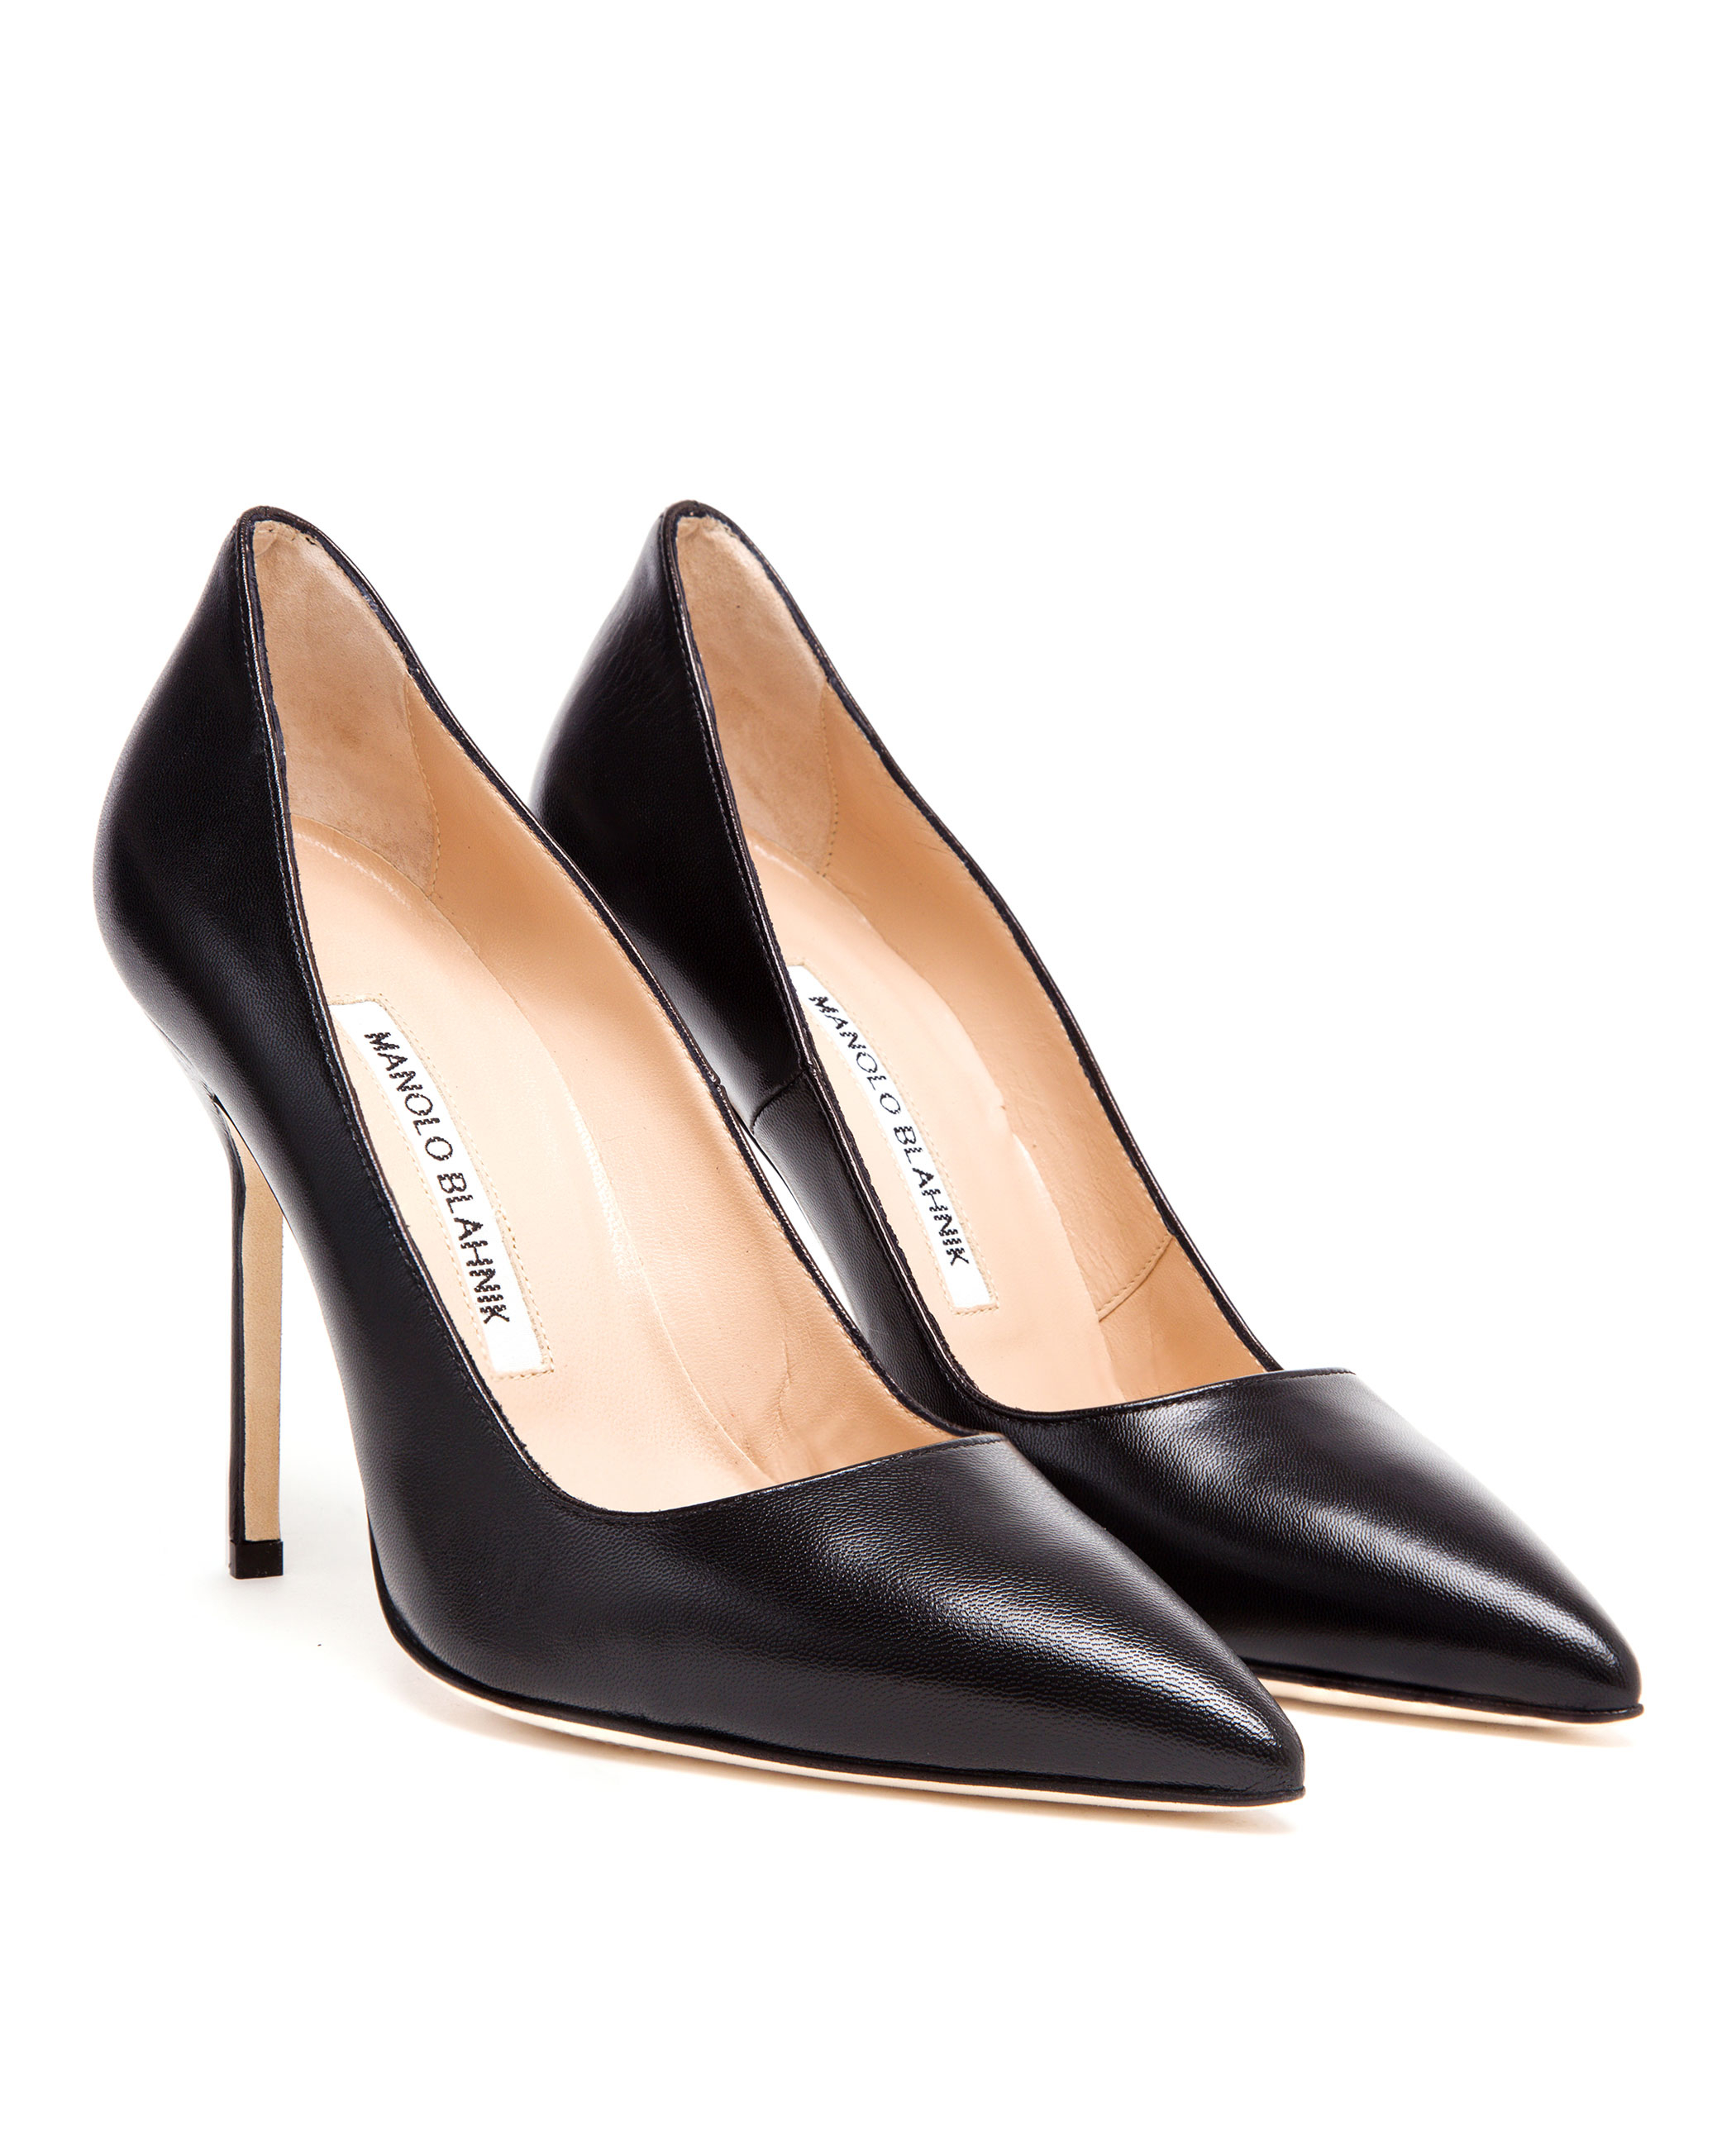 Manolo blahnik bb pick leather 105mm pumps in black lyst for Who is manolo blahnik